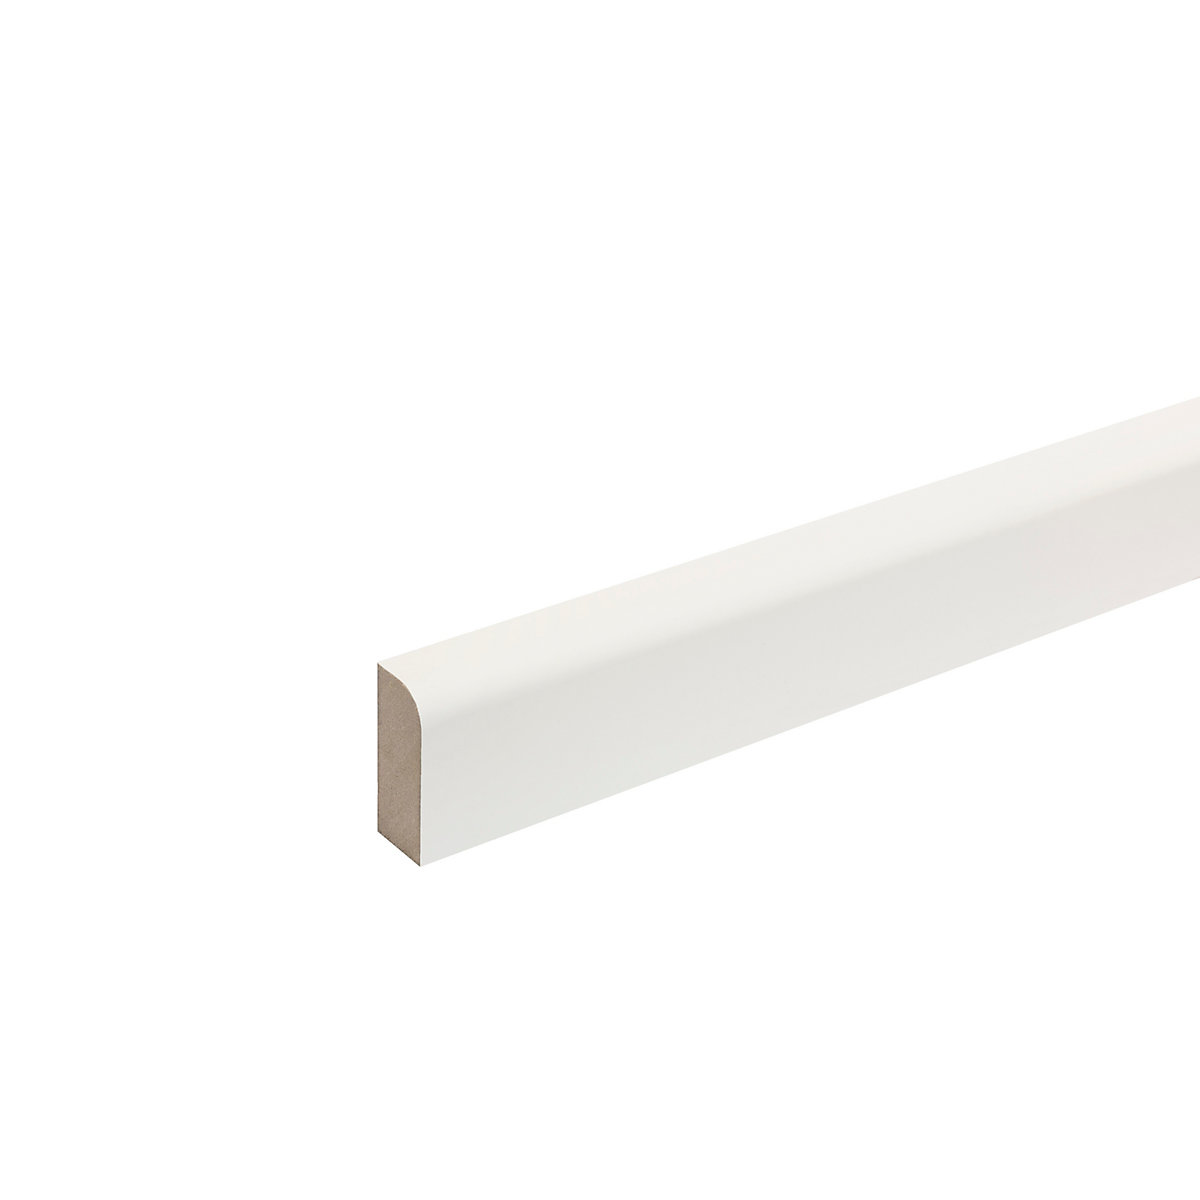 MDF Moulded & Primed Pencil Round Architrave 18mm x 69mm x 2 4m